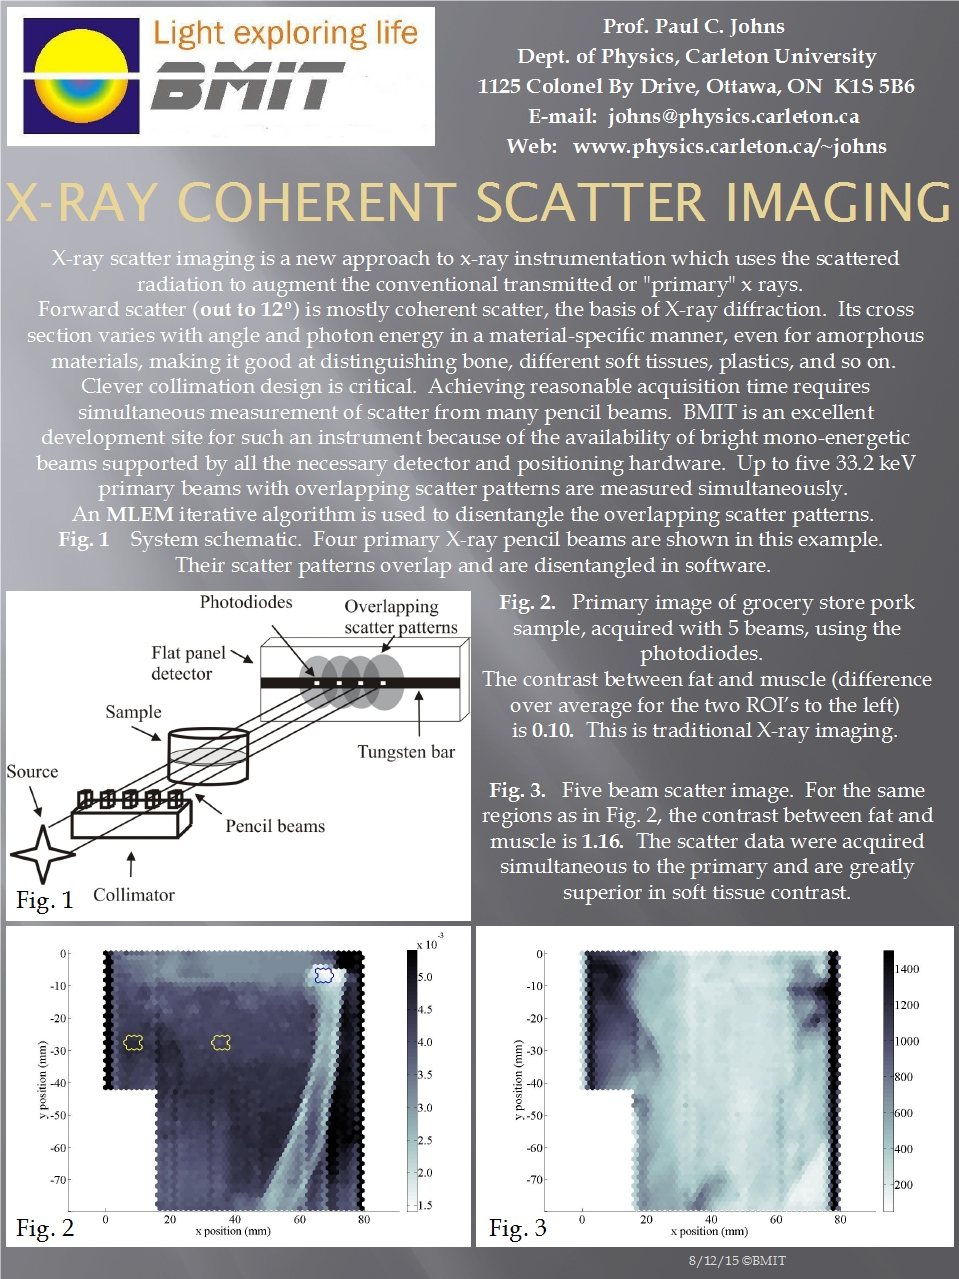 X-Ray Coherent Scatter Imaging Image